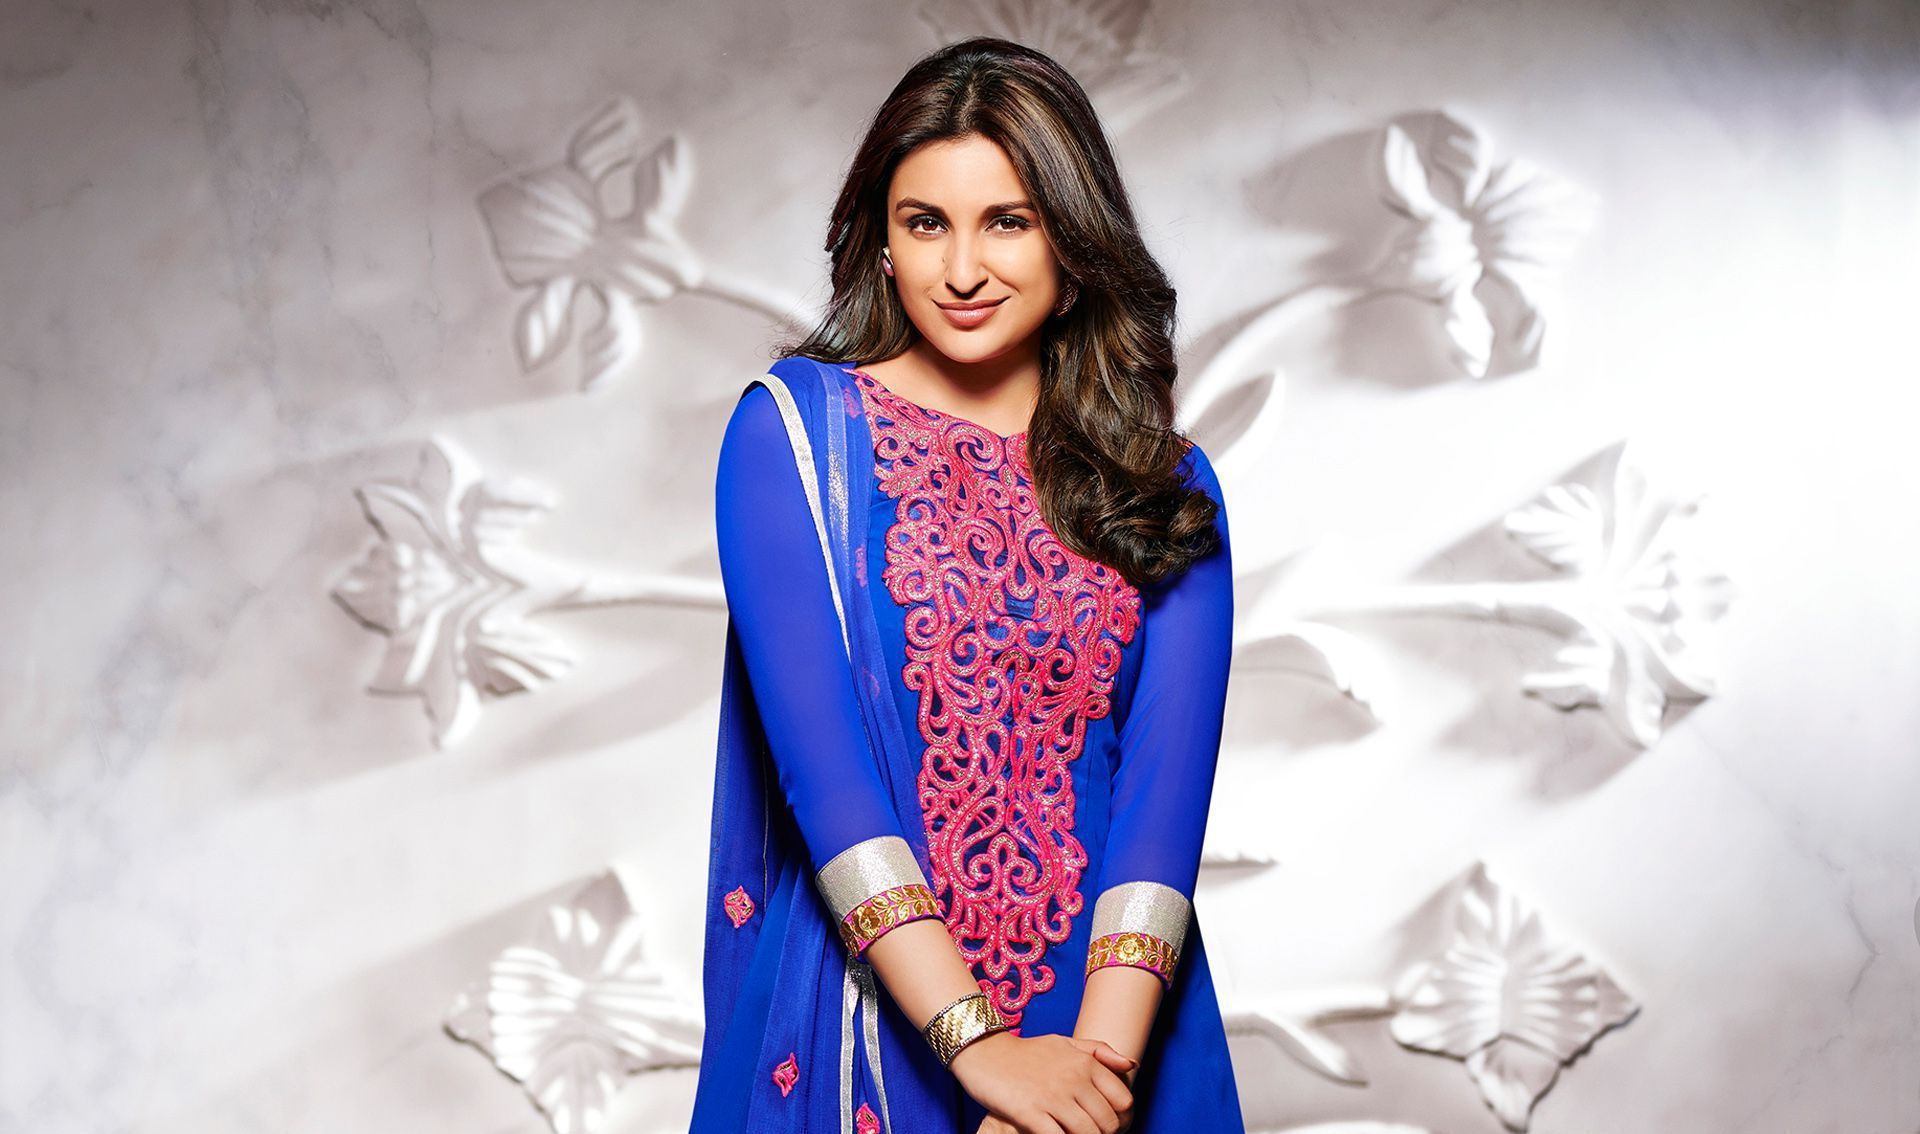 Parineeti chopra wallpapers backgrounds - Parineeti chopra wallpapers for iphone ...